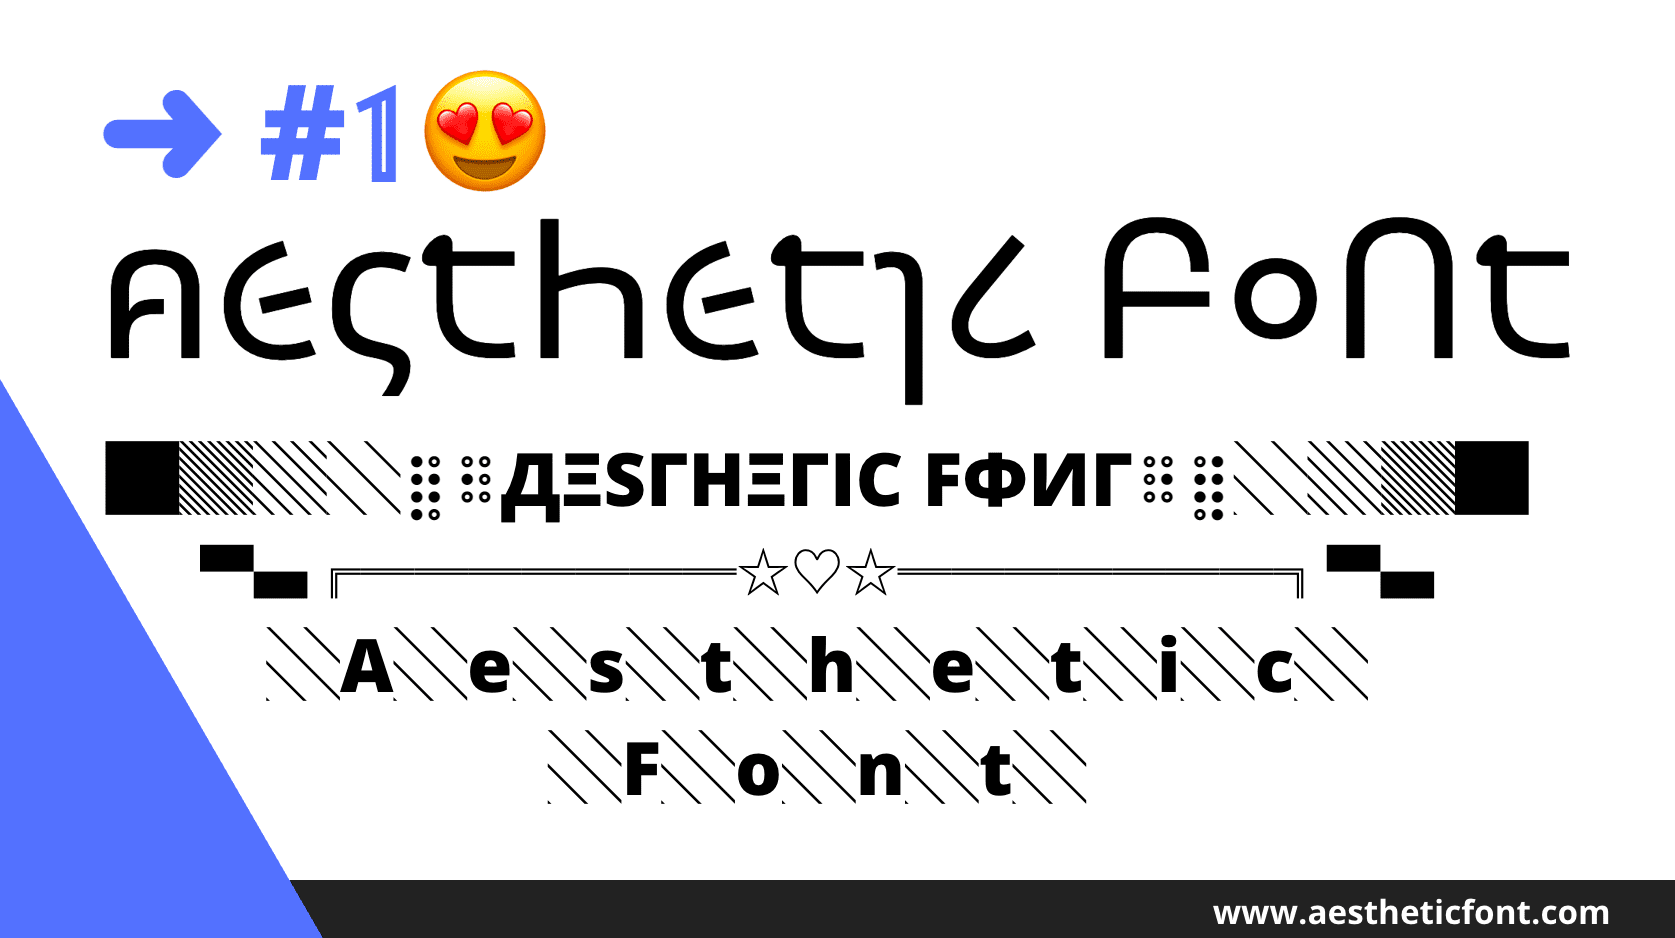 aesthetic Text Font